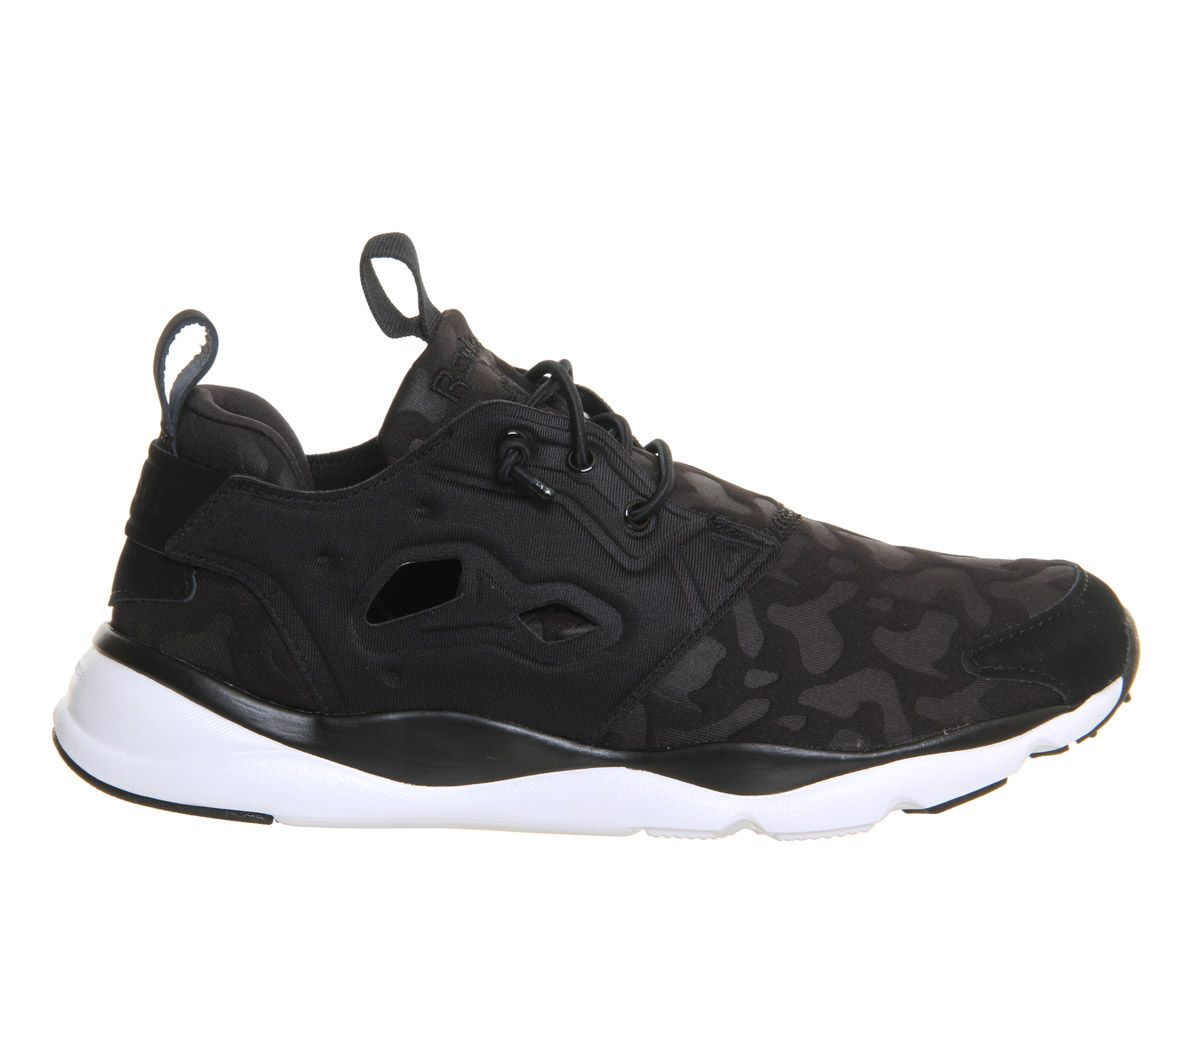 b28ee7fcd898d3 Reebok Fury Lite Black Leopard Concrete Jungle W - Hers trainers ...